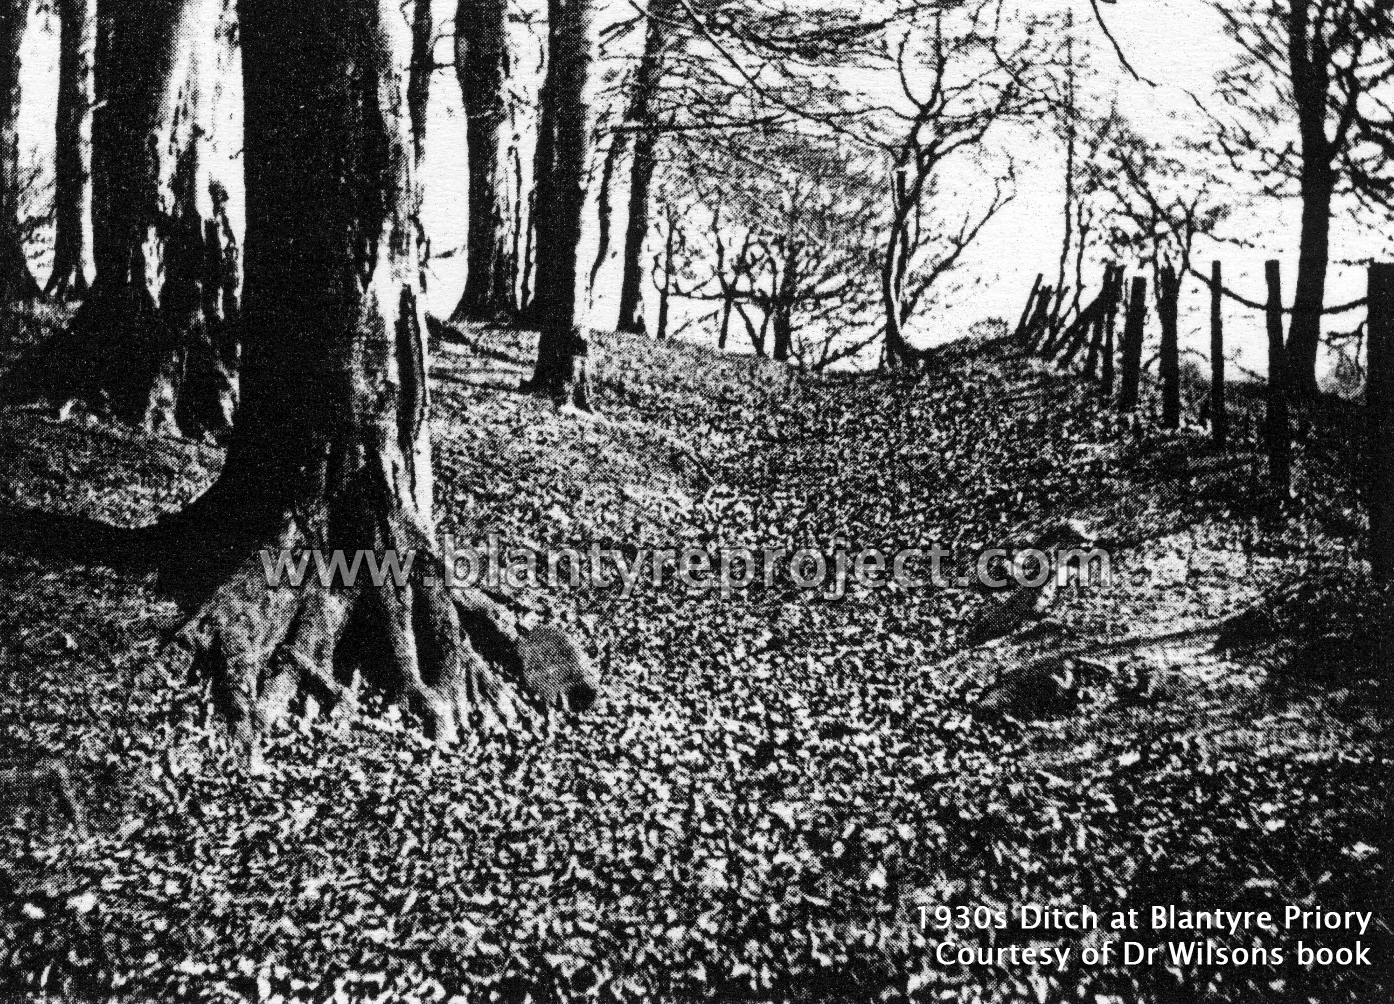 1930s Ditch at Blantyre Priory